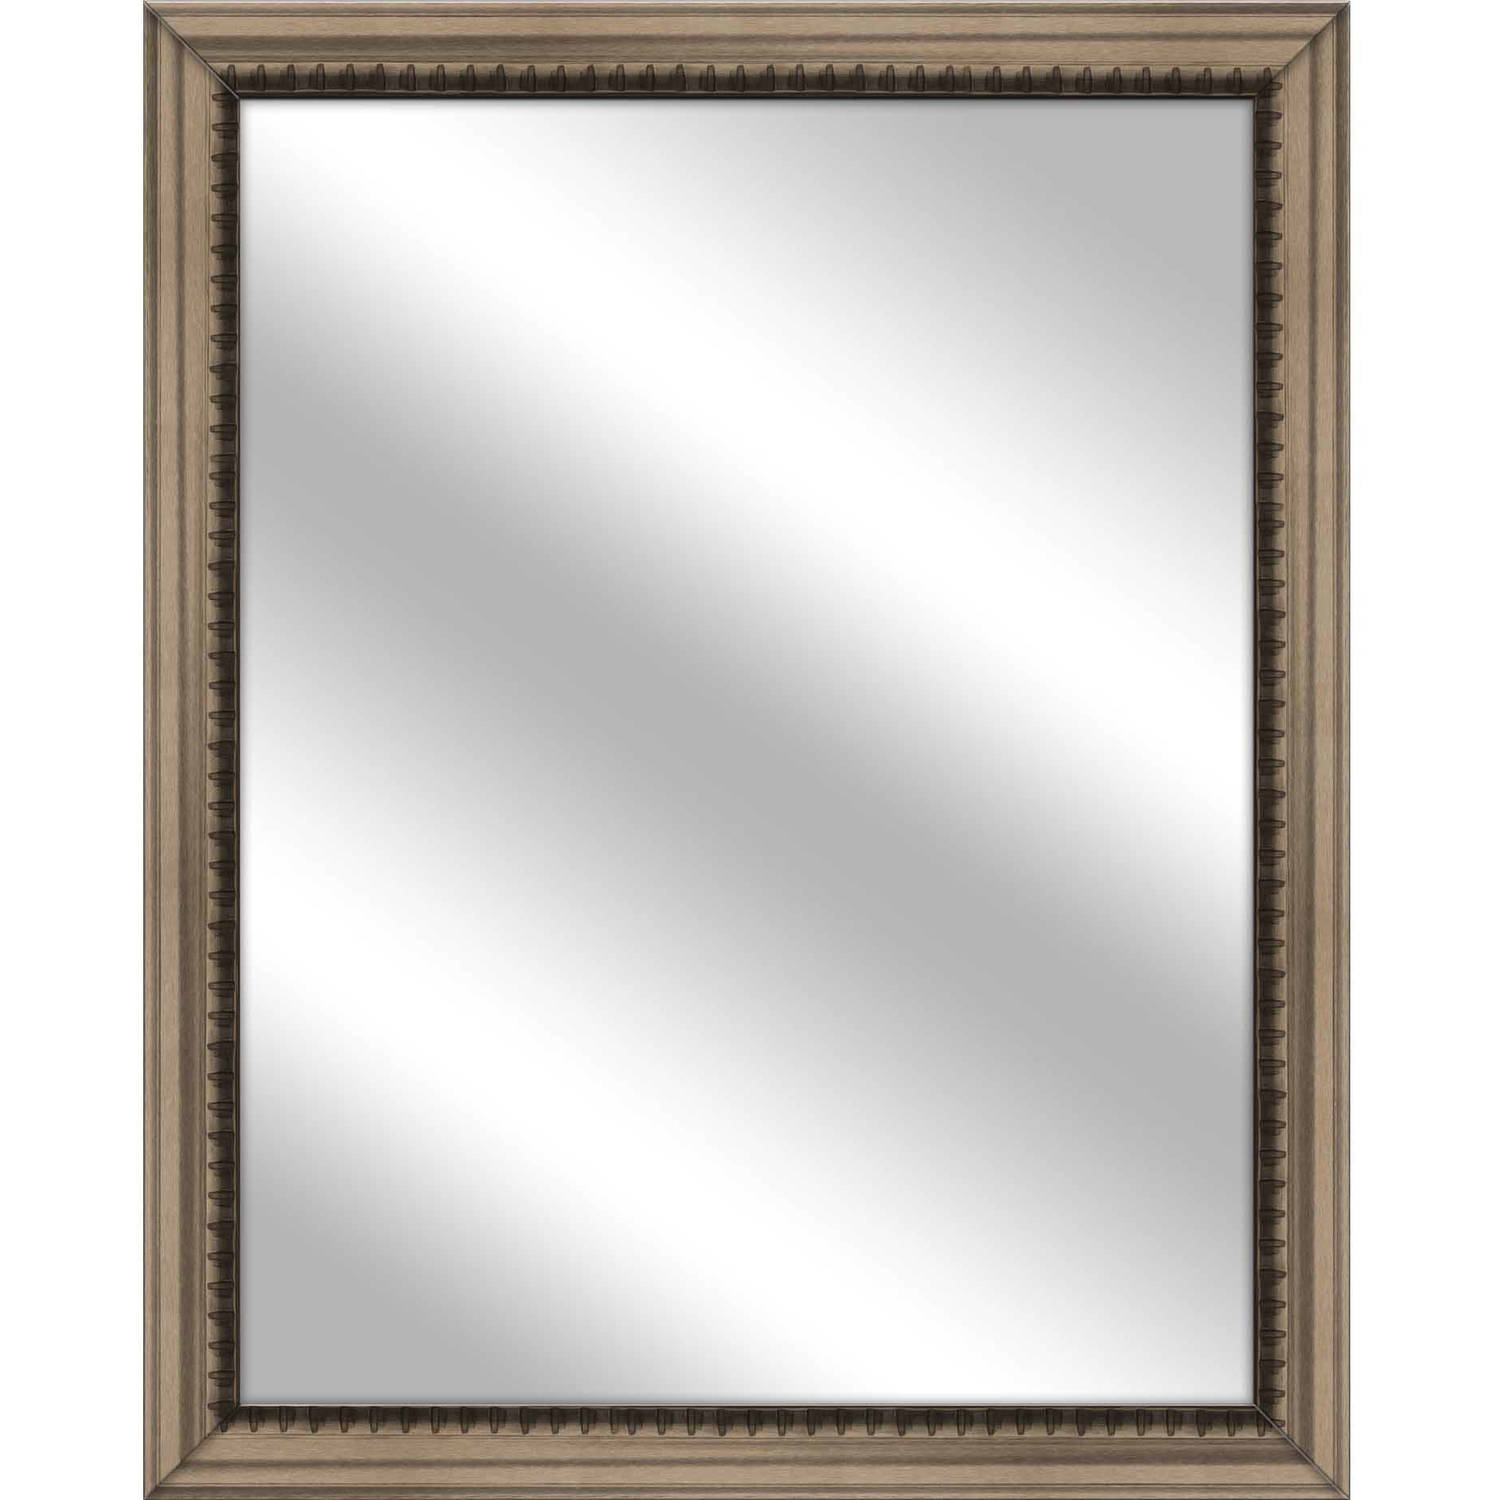 Vanity Mirror, Champagne, 25x31 by PTM Images